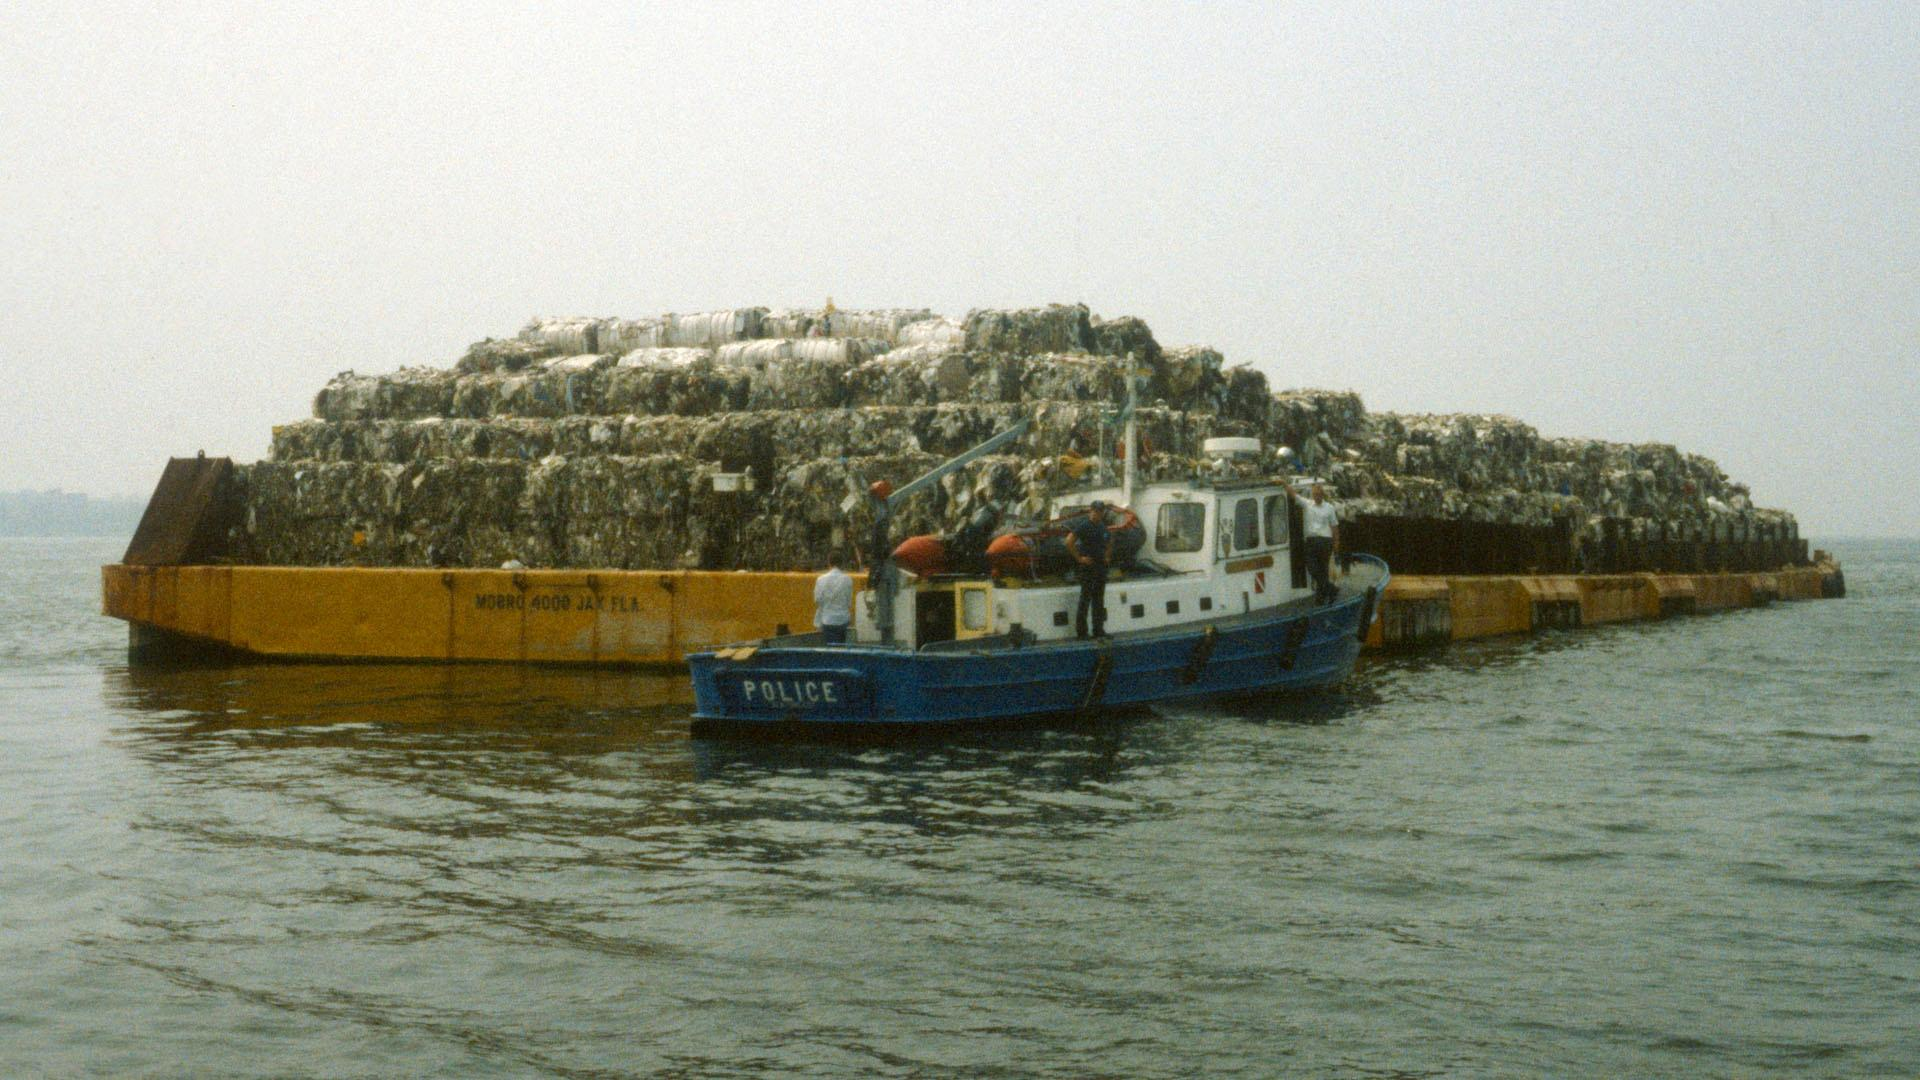 The Garbage Barge That Helped Fuel a Movement | Full Report